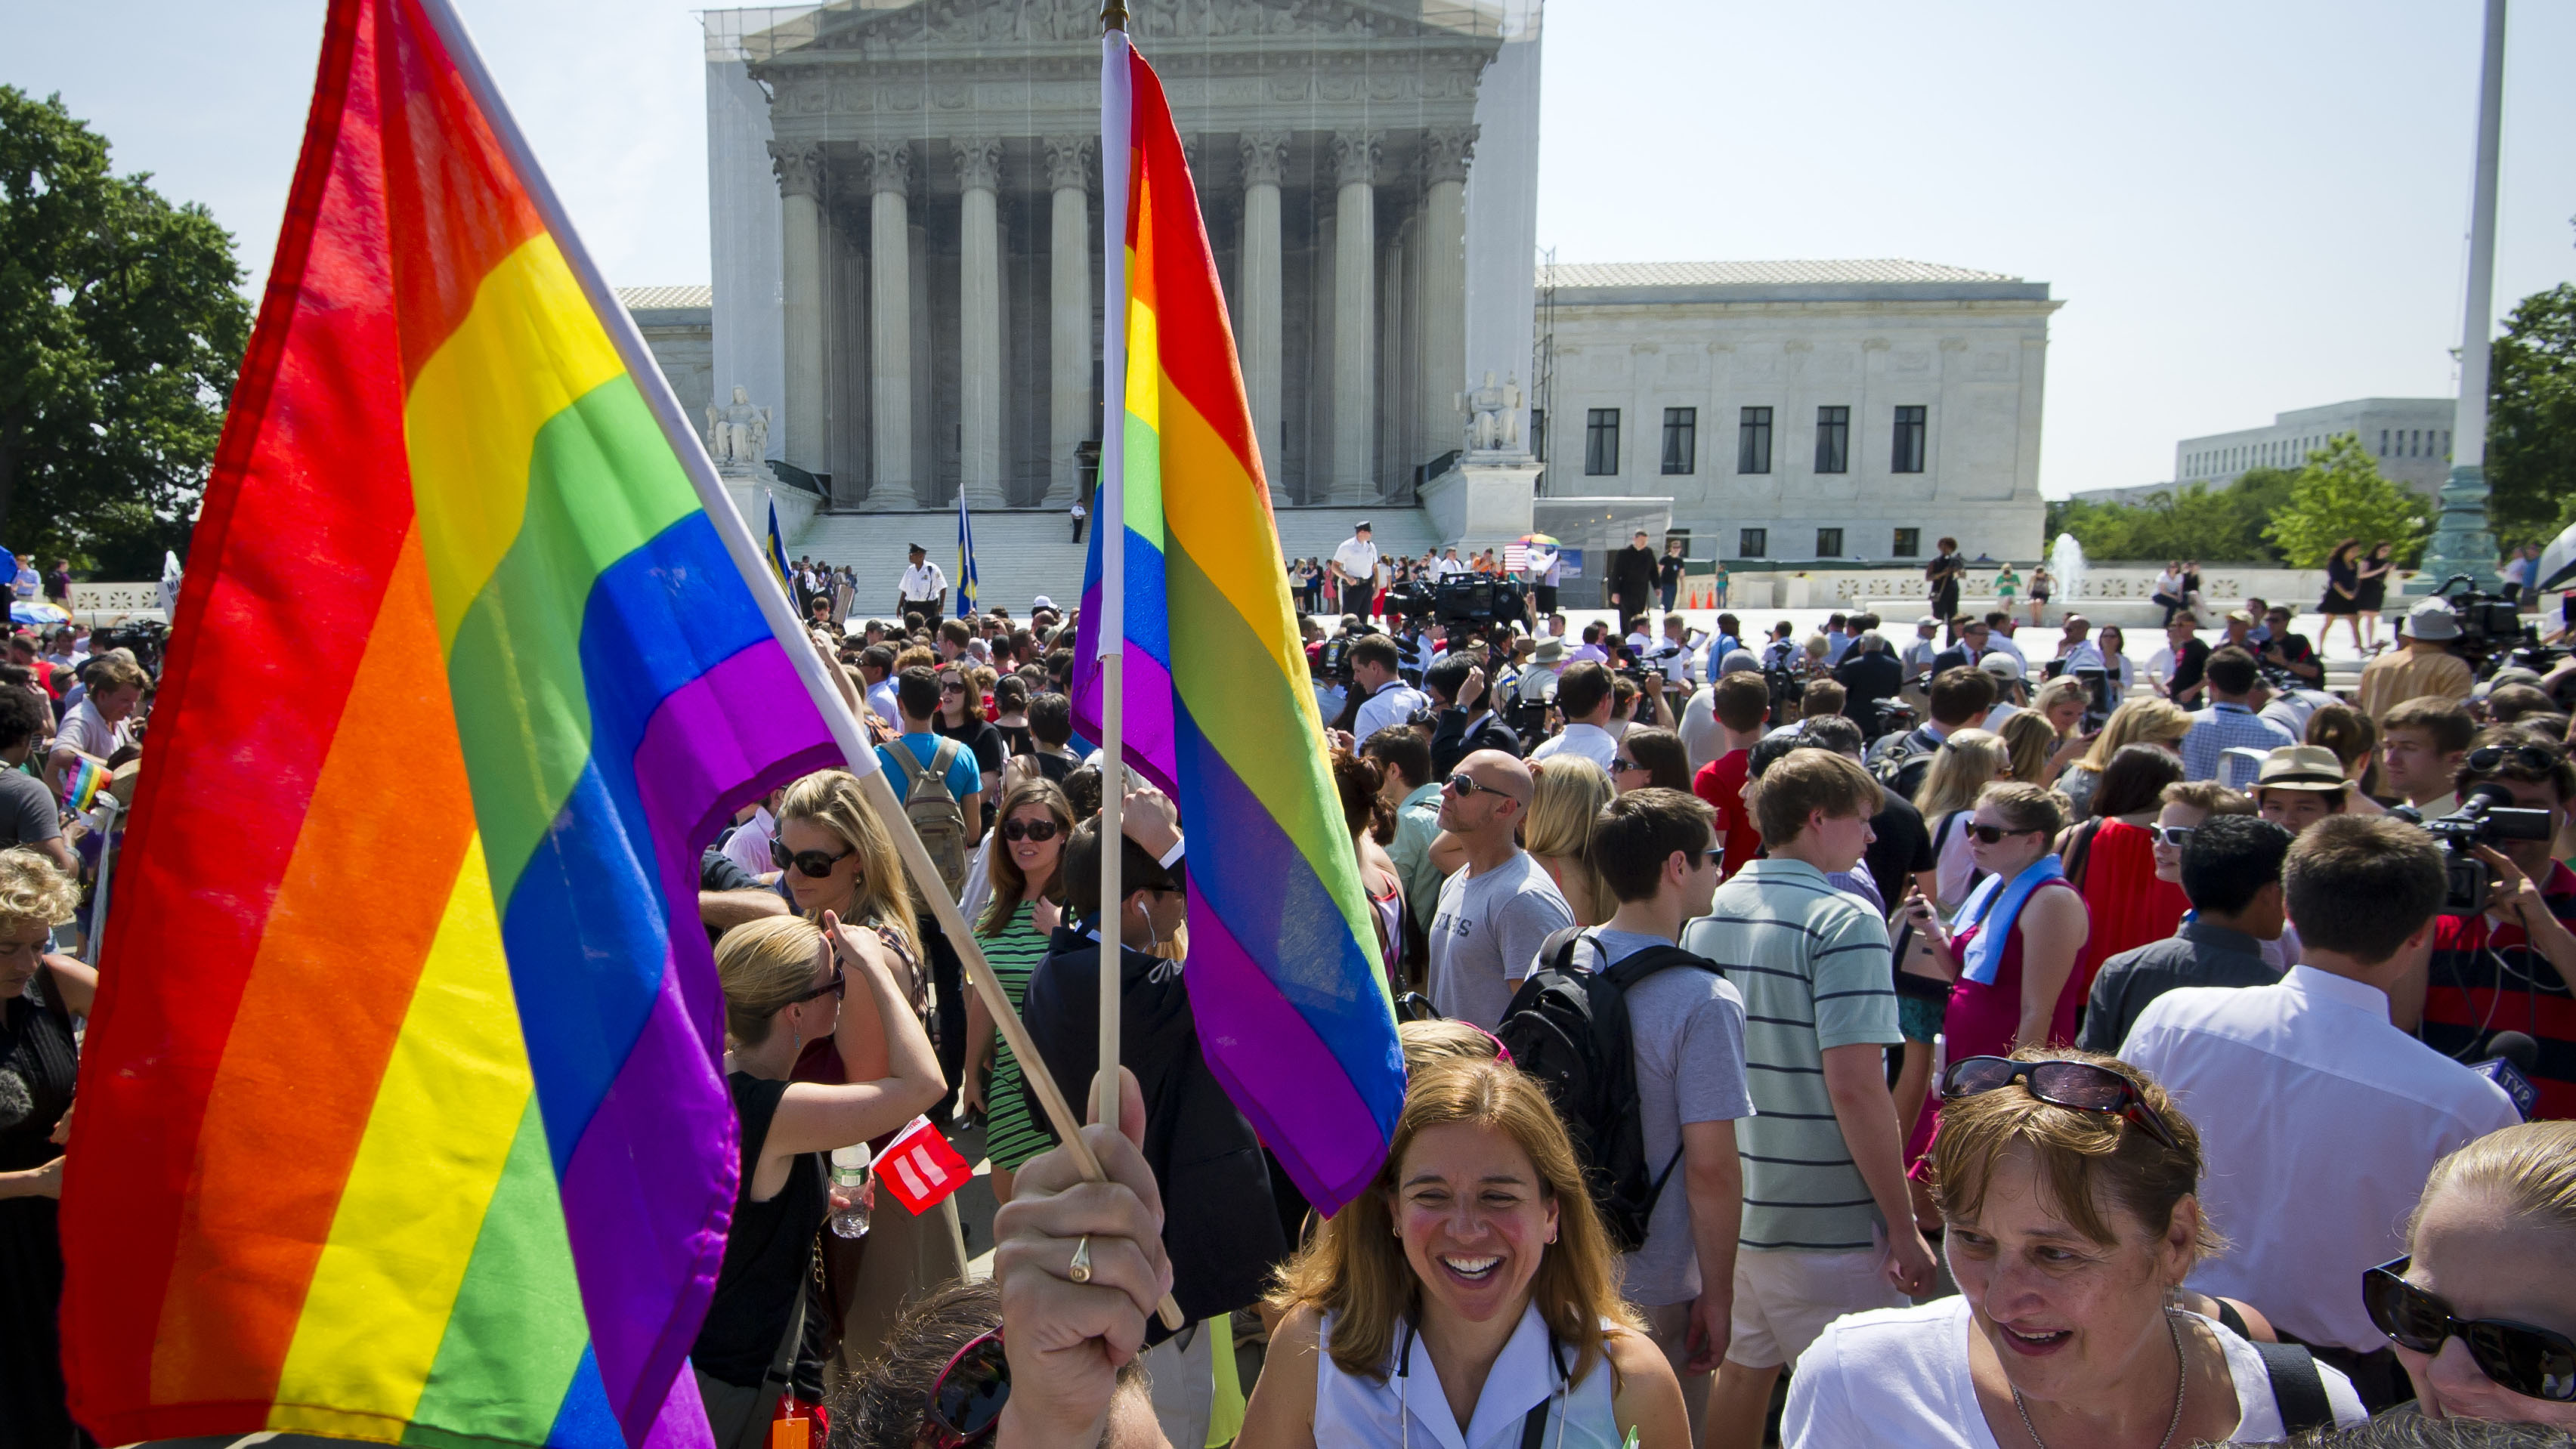 Gay rights activists gather outside the U.S. Supreme Court building on June 26, 2013.